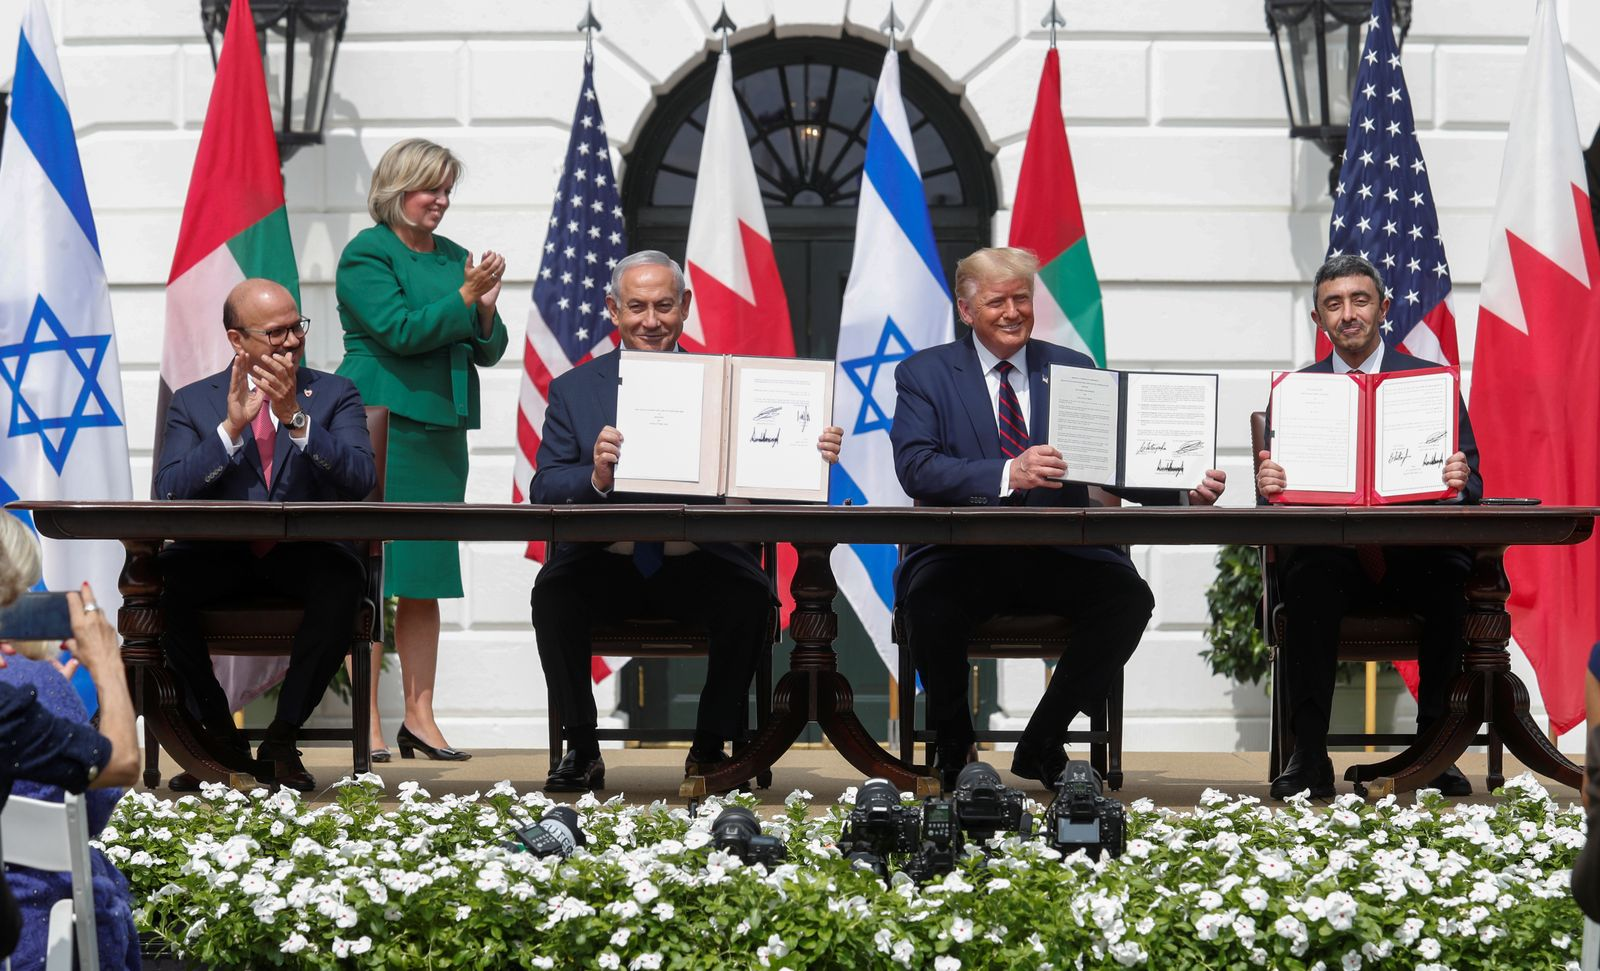 U.S. President Trump hosts leaders for Abraham Accords signing ceremony at the White House in Washington